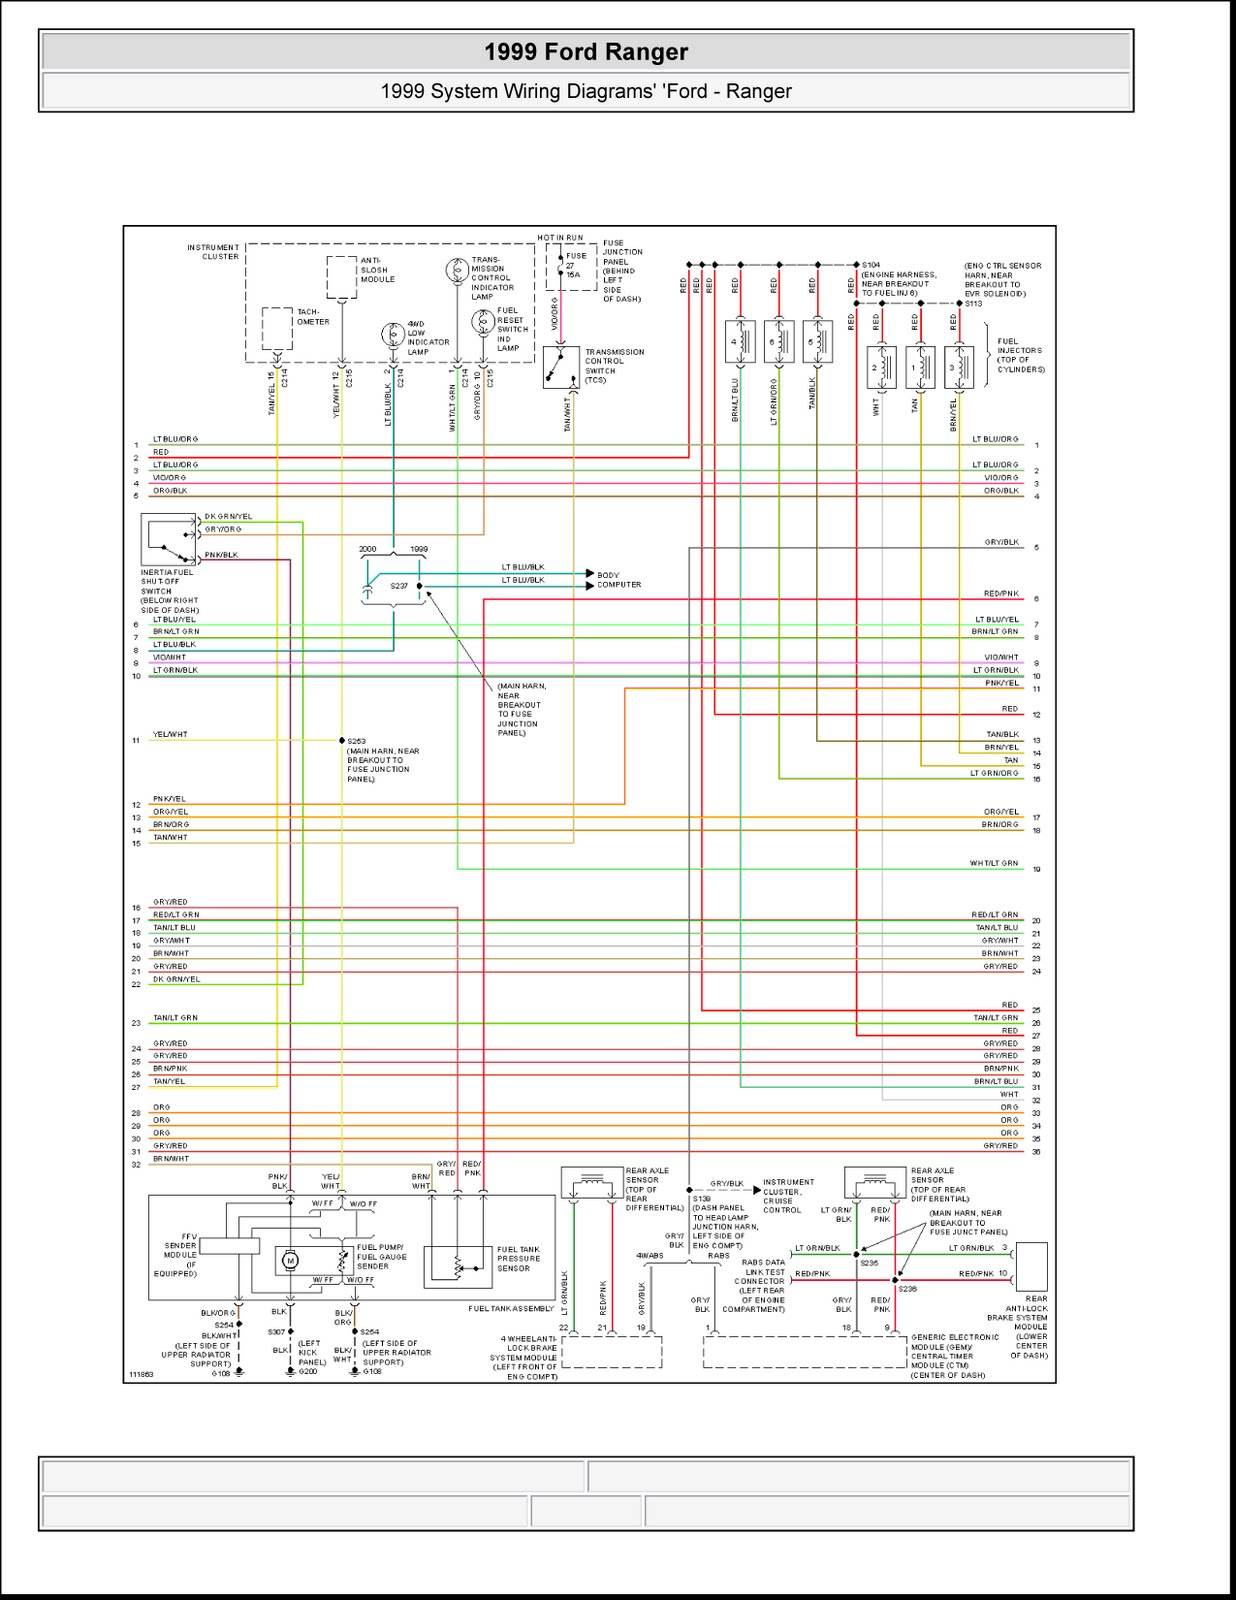 0003 1999 ford ranger system wiring diagrams 4 images wiring 1999 ford ranger ignition wiring diagram at gsmportal.co